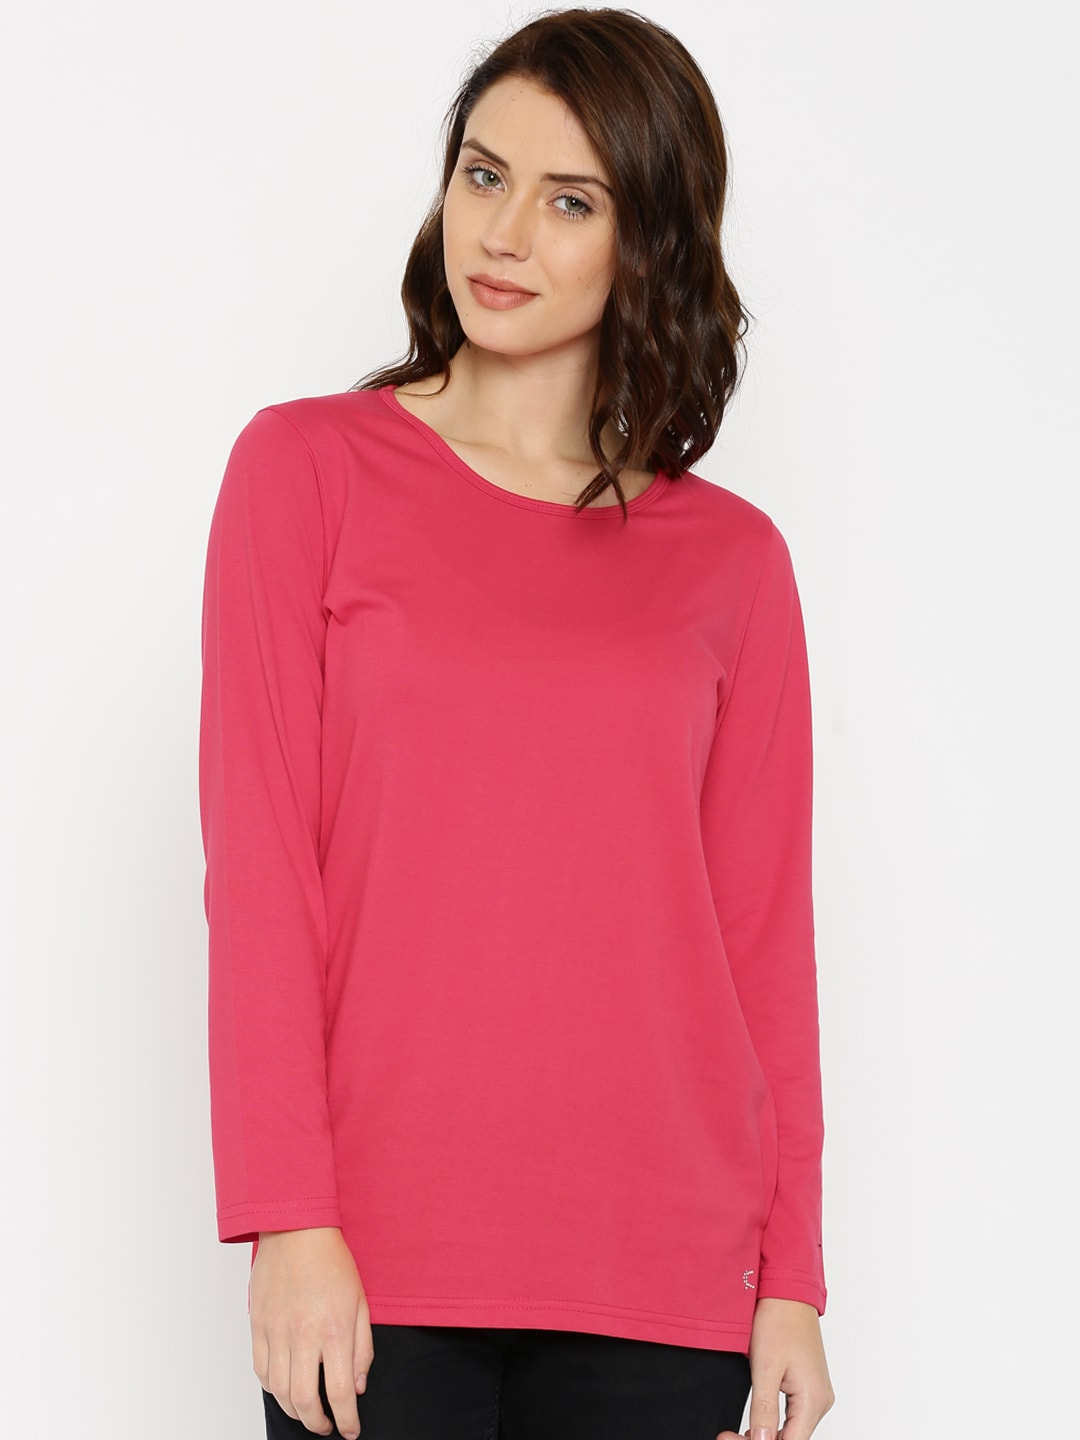 Kanvin Red Lounge Top KAW16286A image